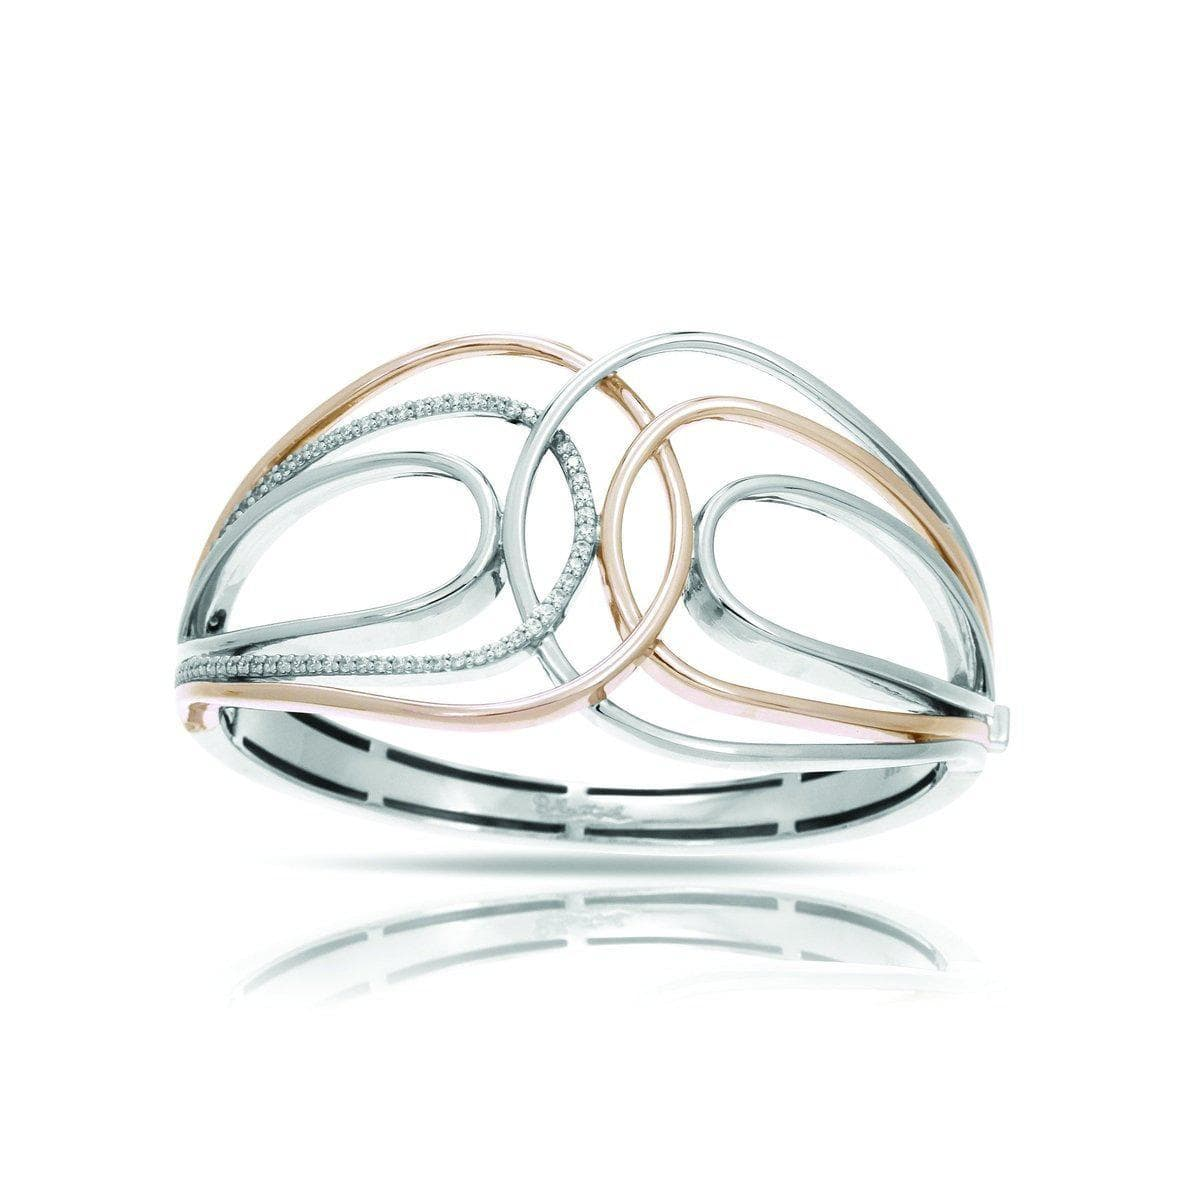 Onda Silver and Rose Bangle-Belle Etoile-Renee Taylor Gallery